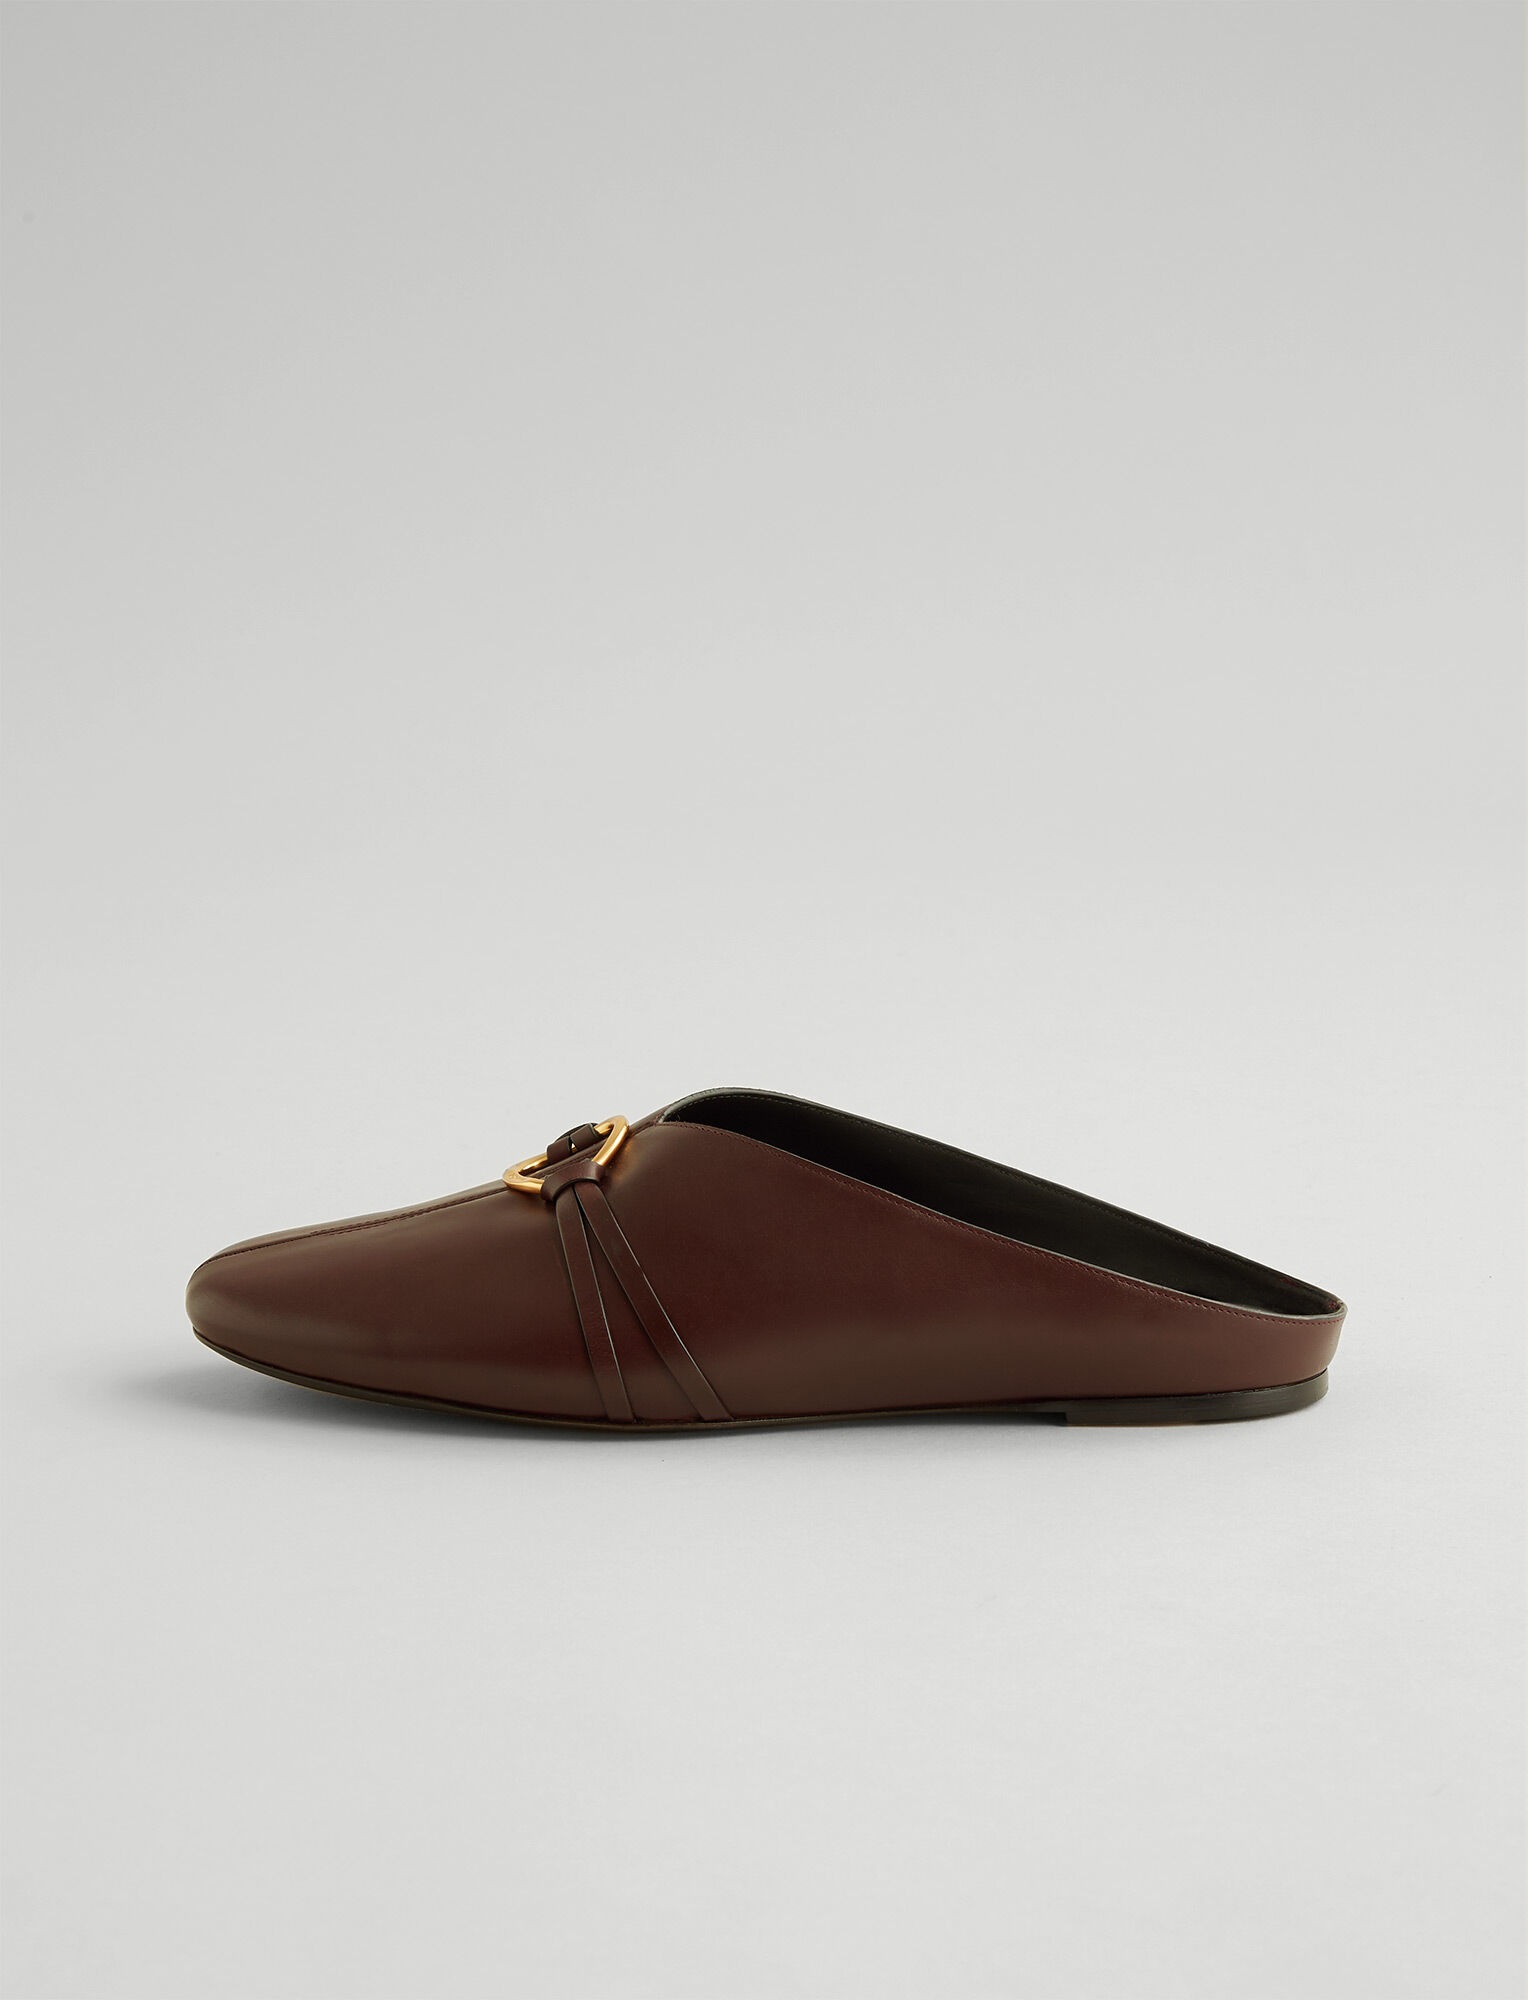 Joseph, Elsa Shearling Mule, in RAISIN